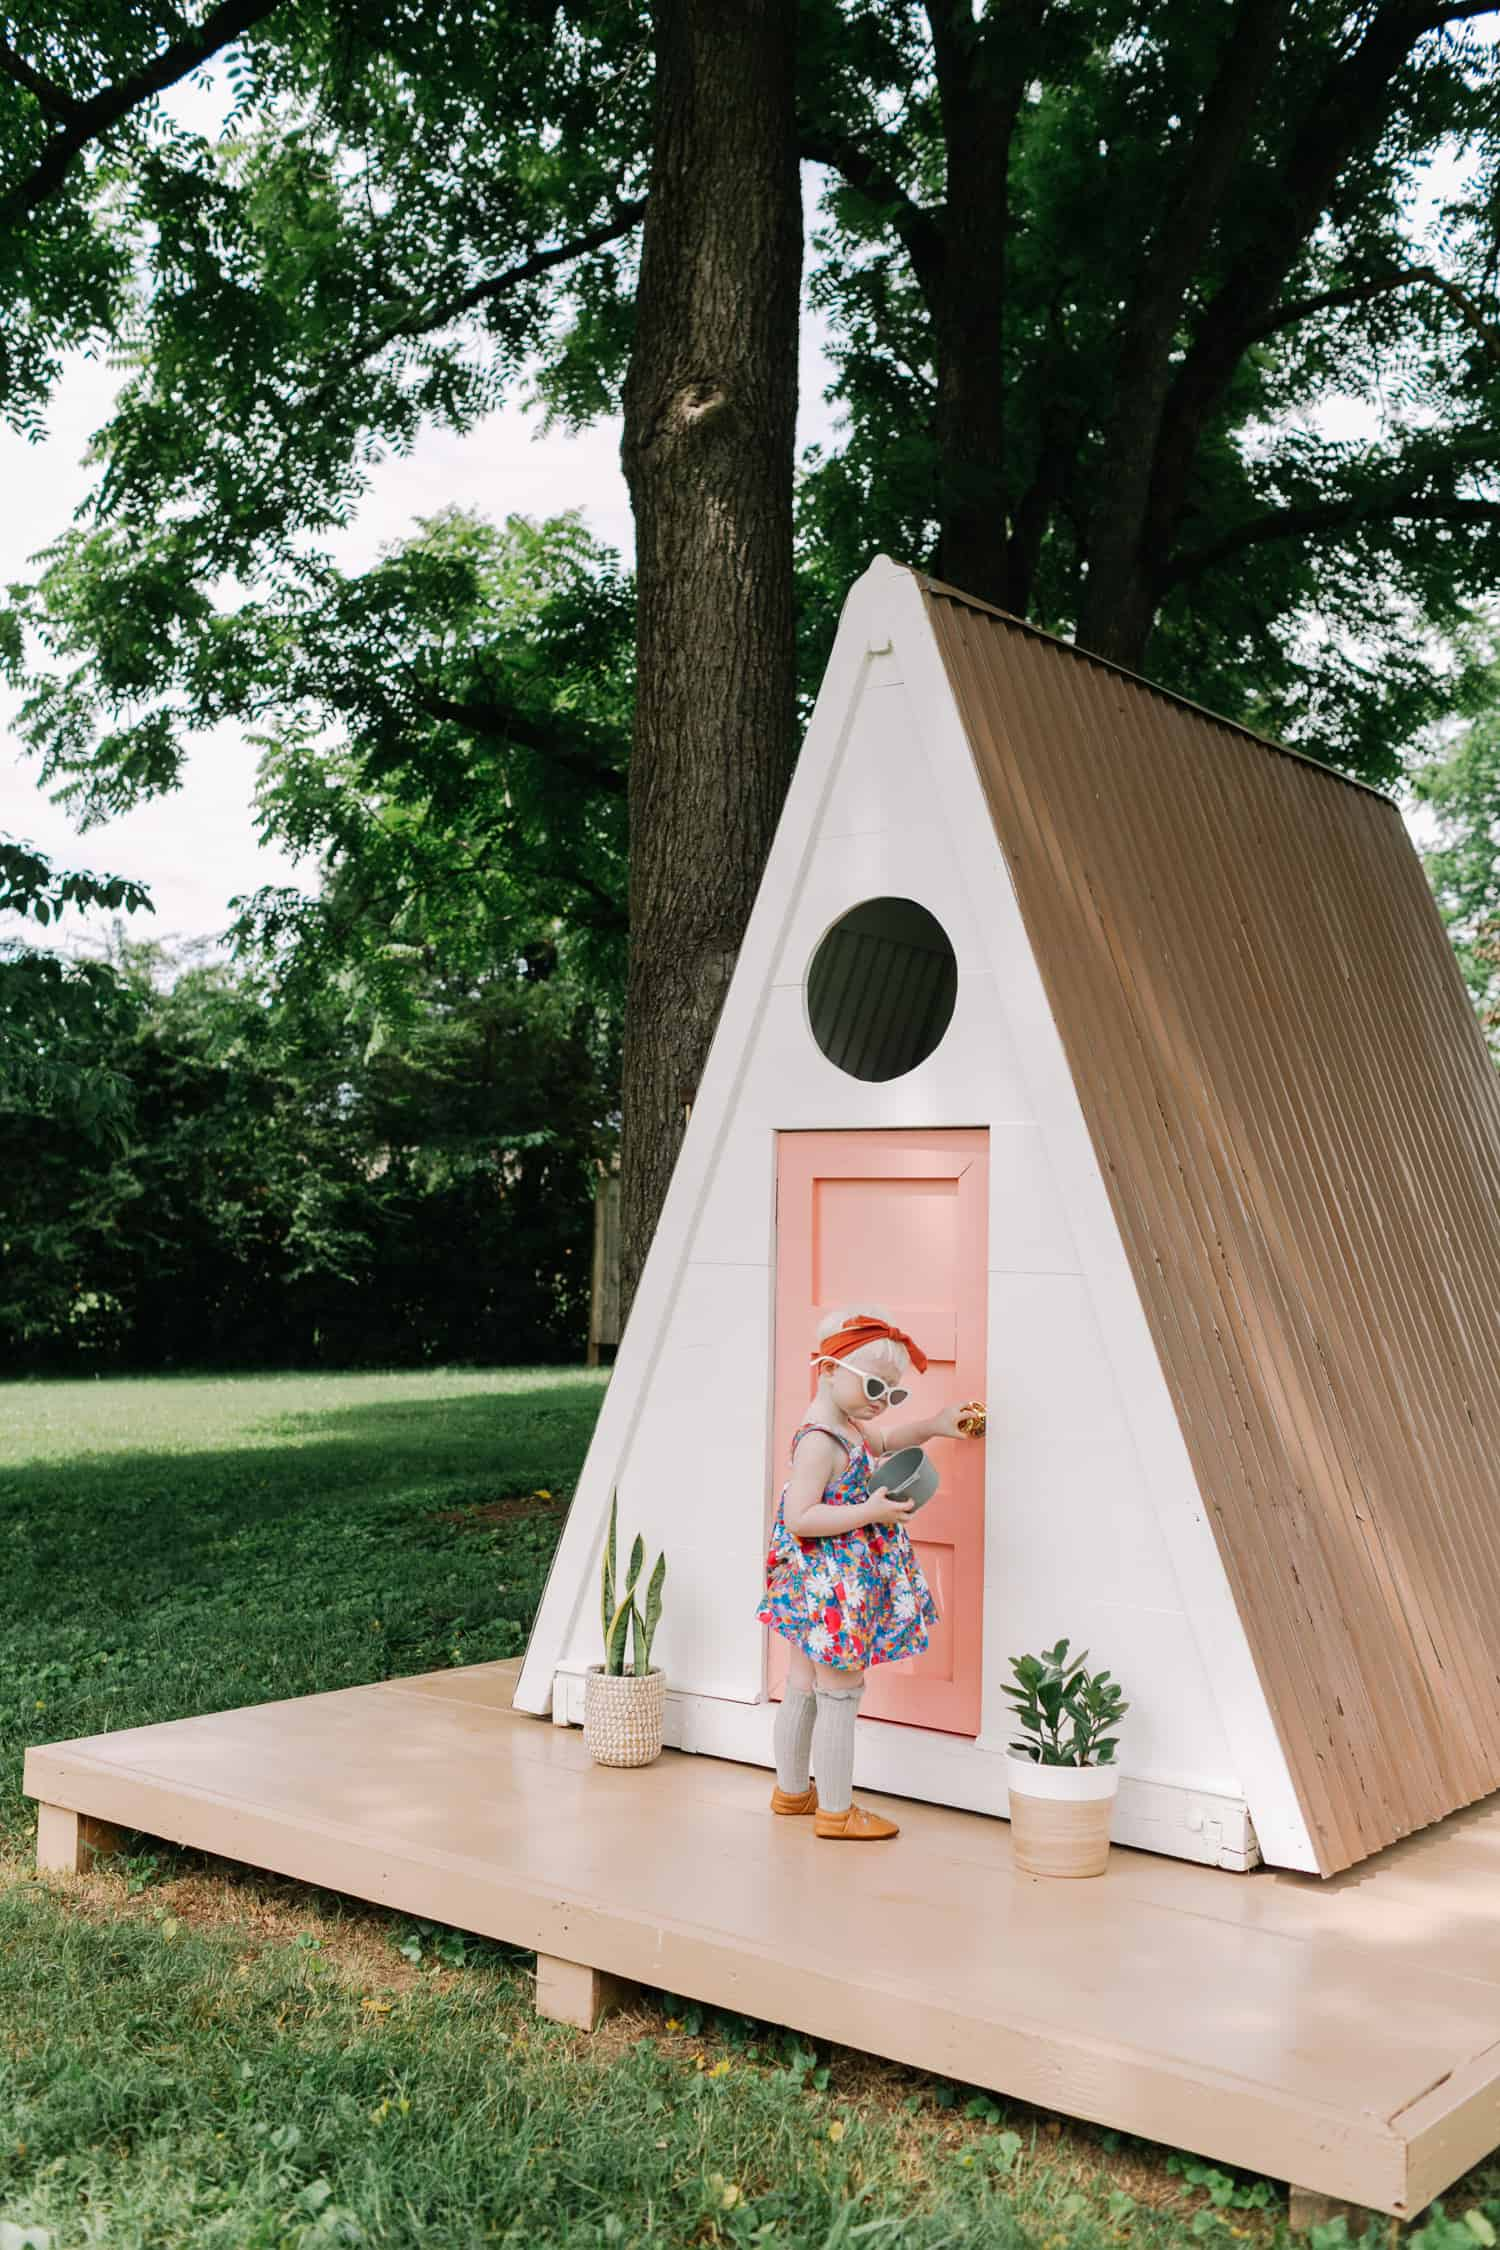 Time To Show You How We Built This A Frame Playhouse